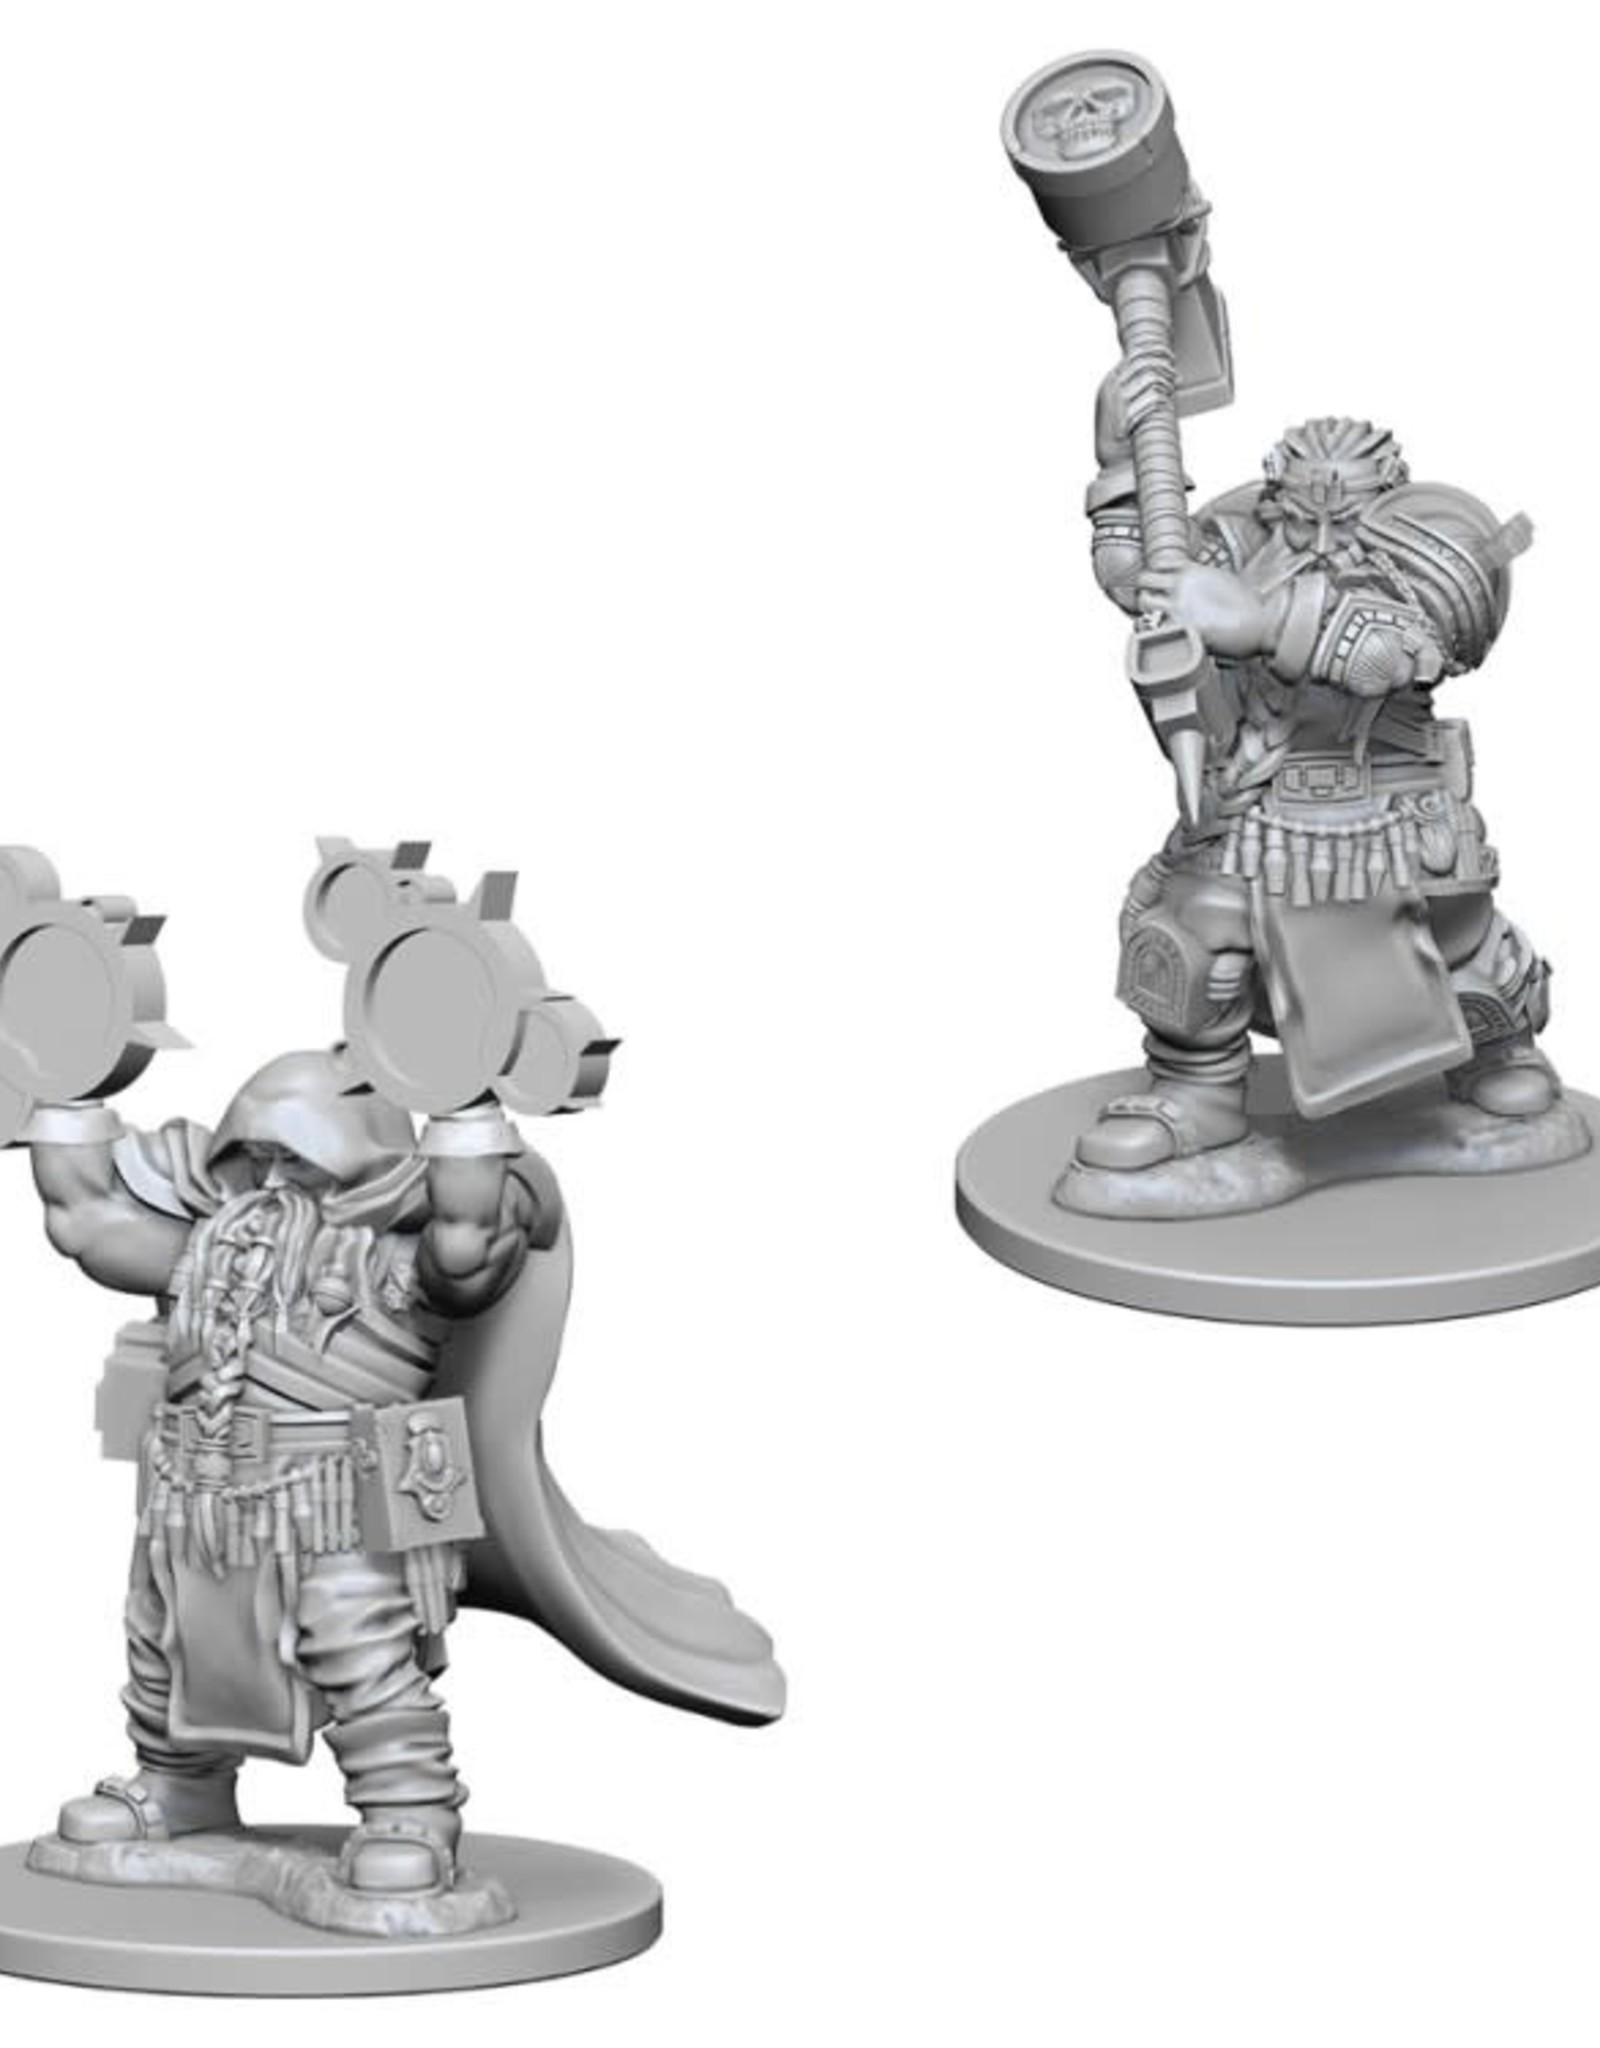 WizKids D&D Nolzur Dwarf Cleric  (He/Him/They/Them)